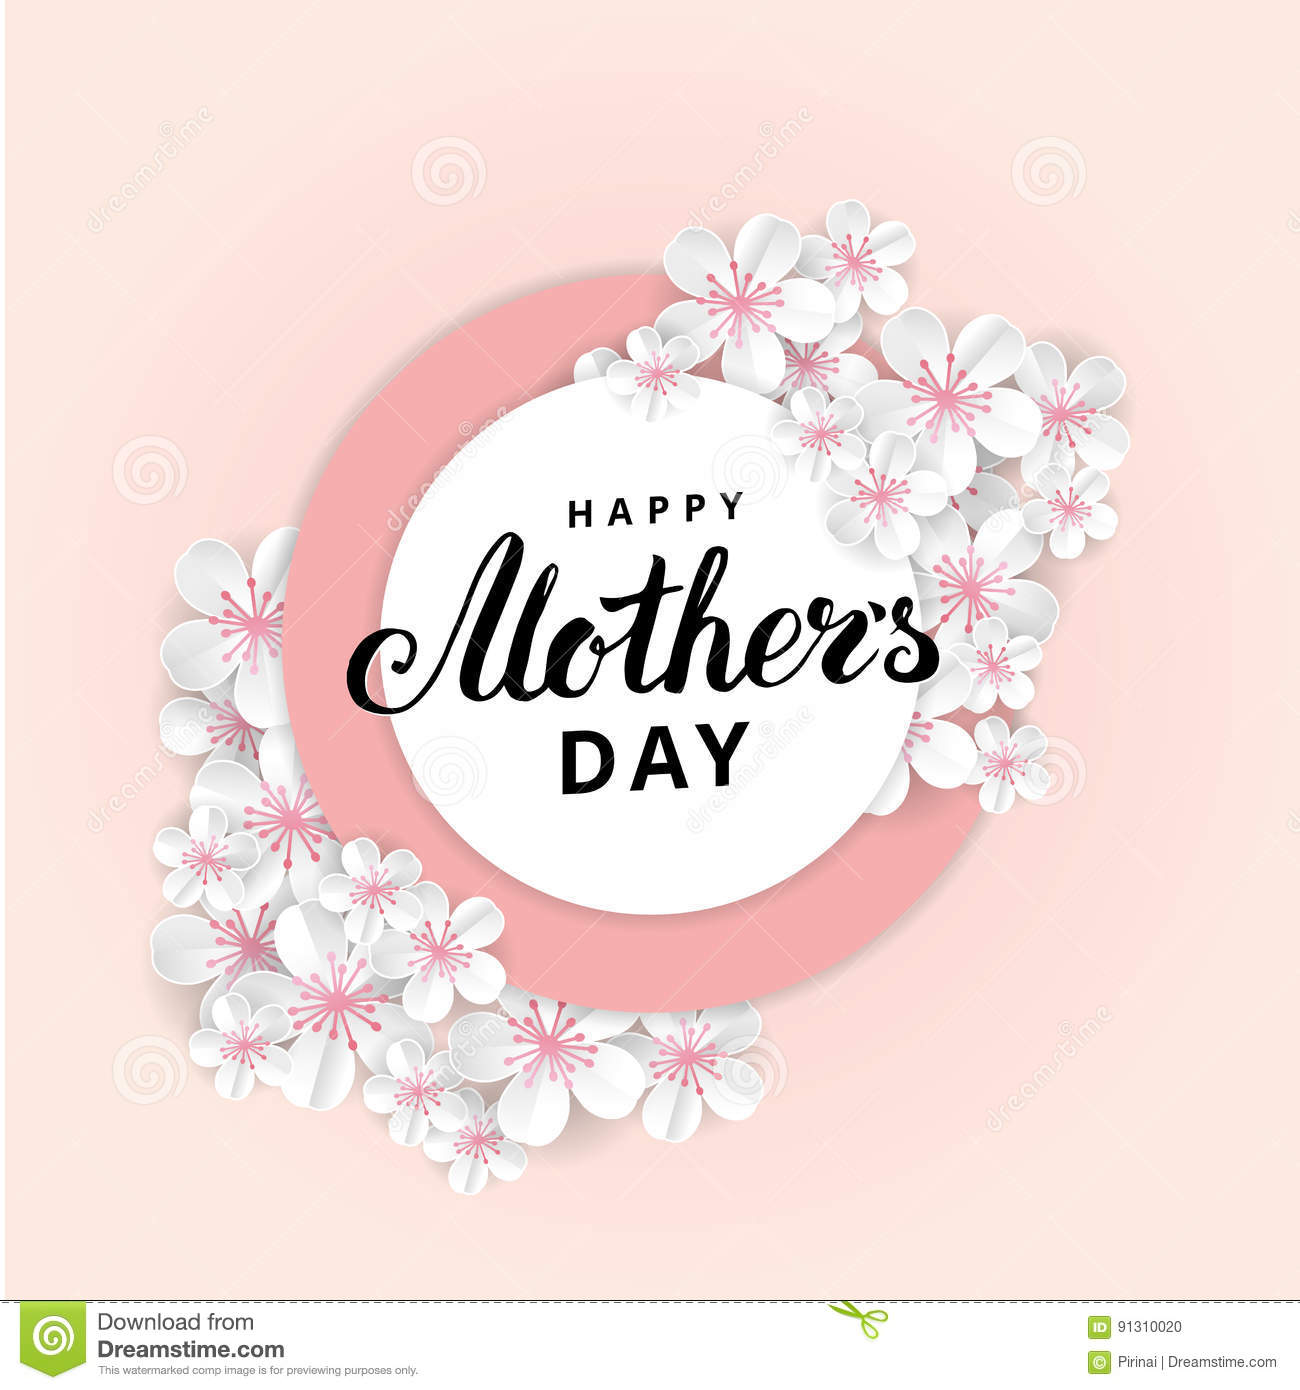 happy mothers day sakura flower stock vector illustration of happy